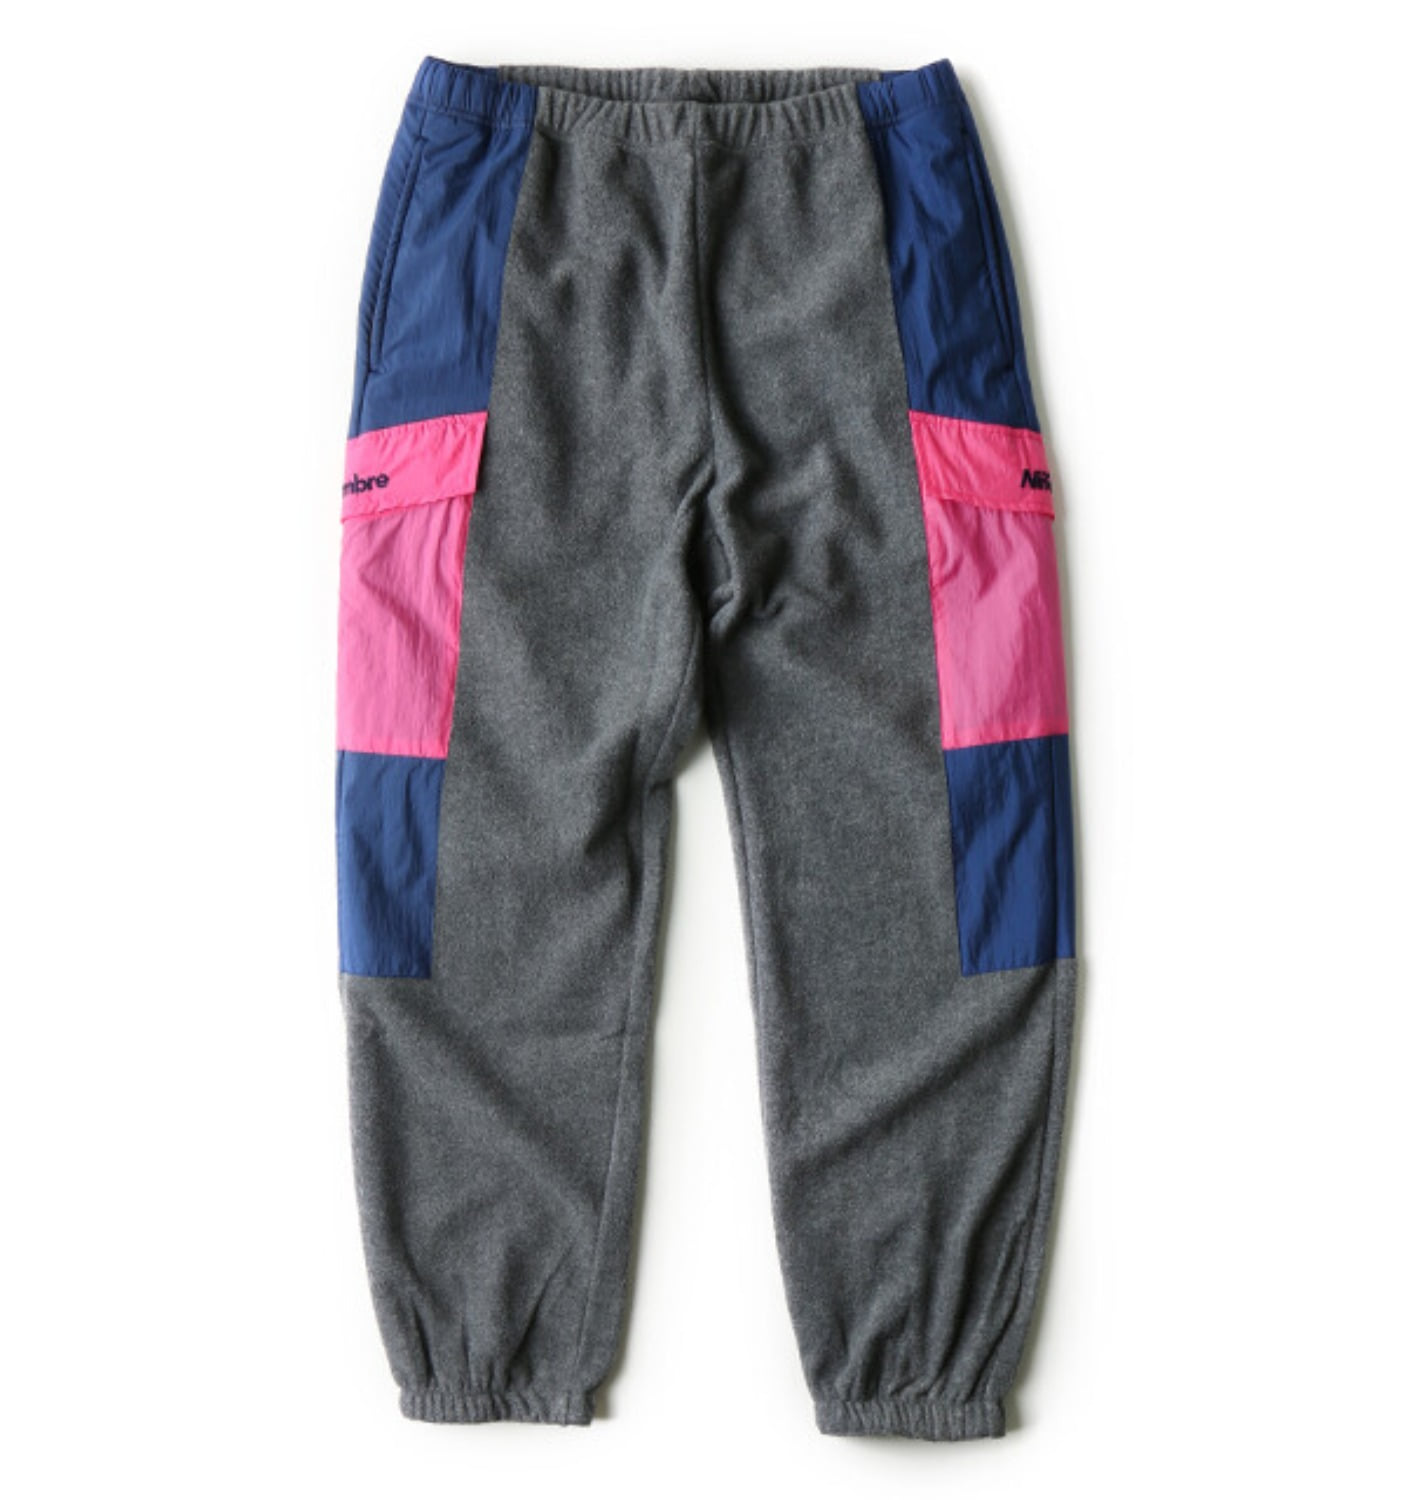 HN FLEECE PANTS GREY